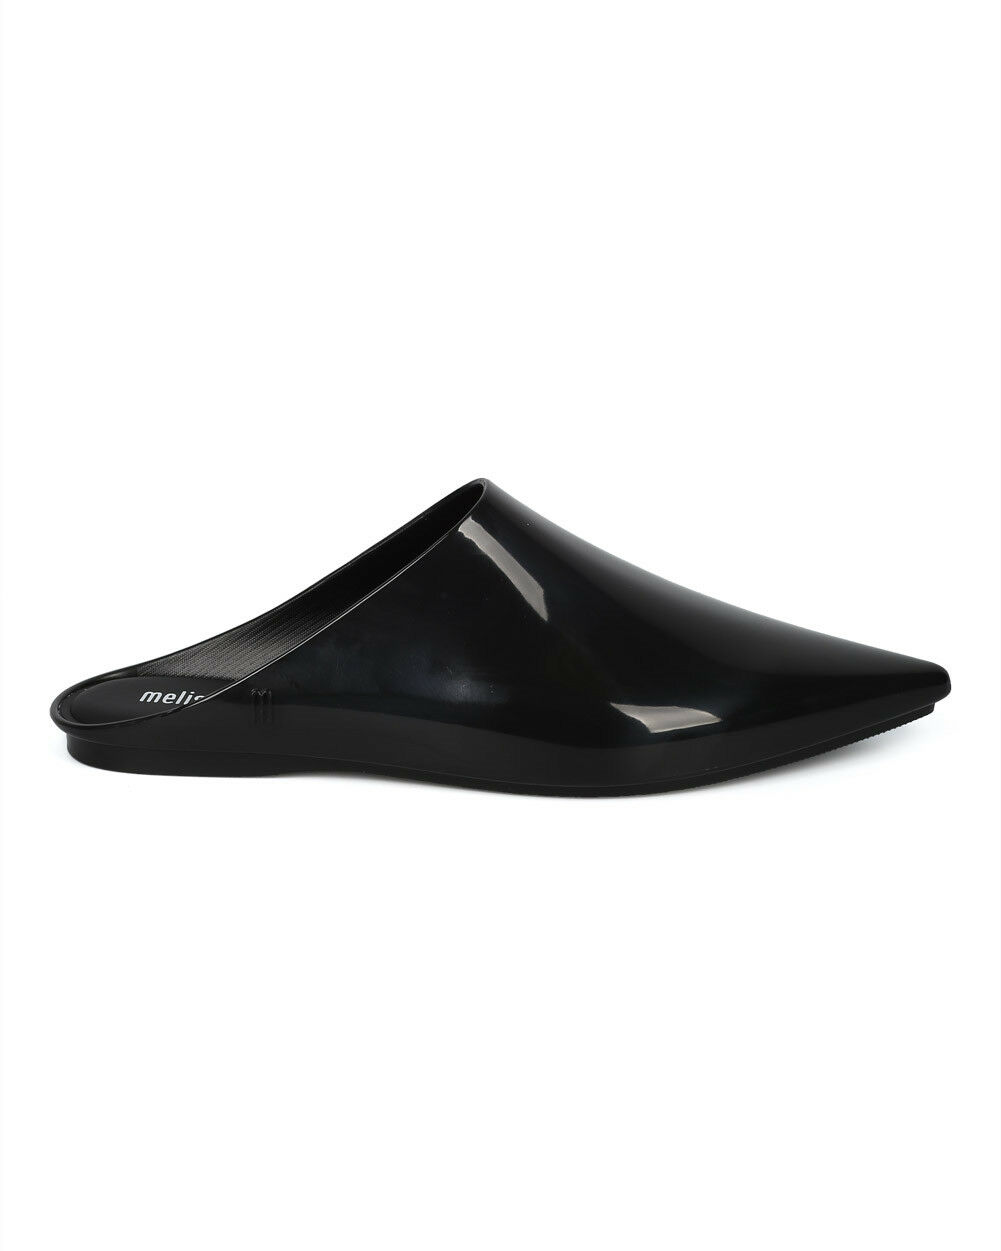 New Melissa She Pointy Toe Slip On Slides Mules USA  6, 8, 9 USA